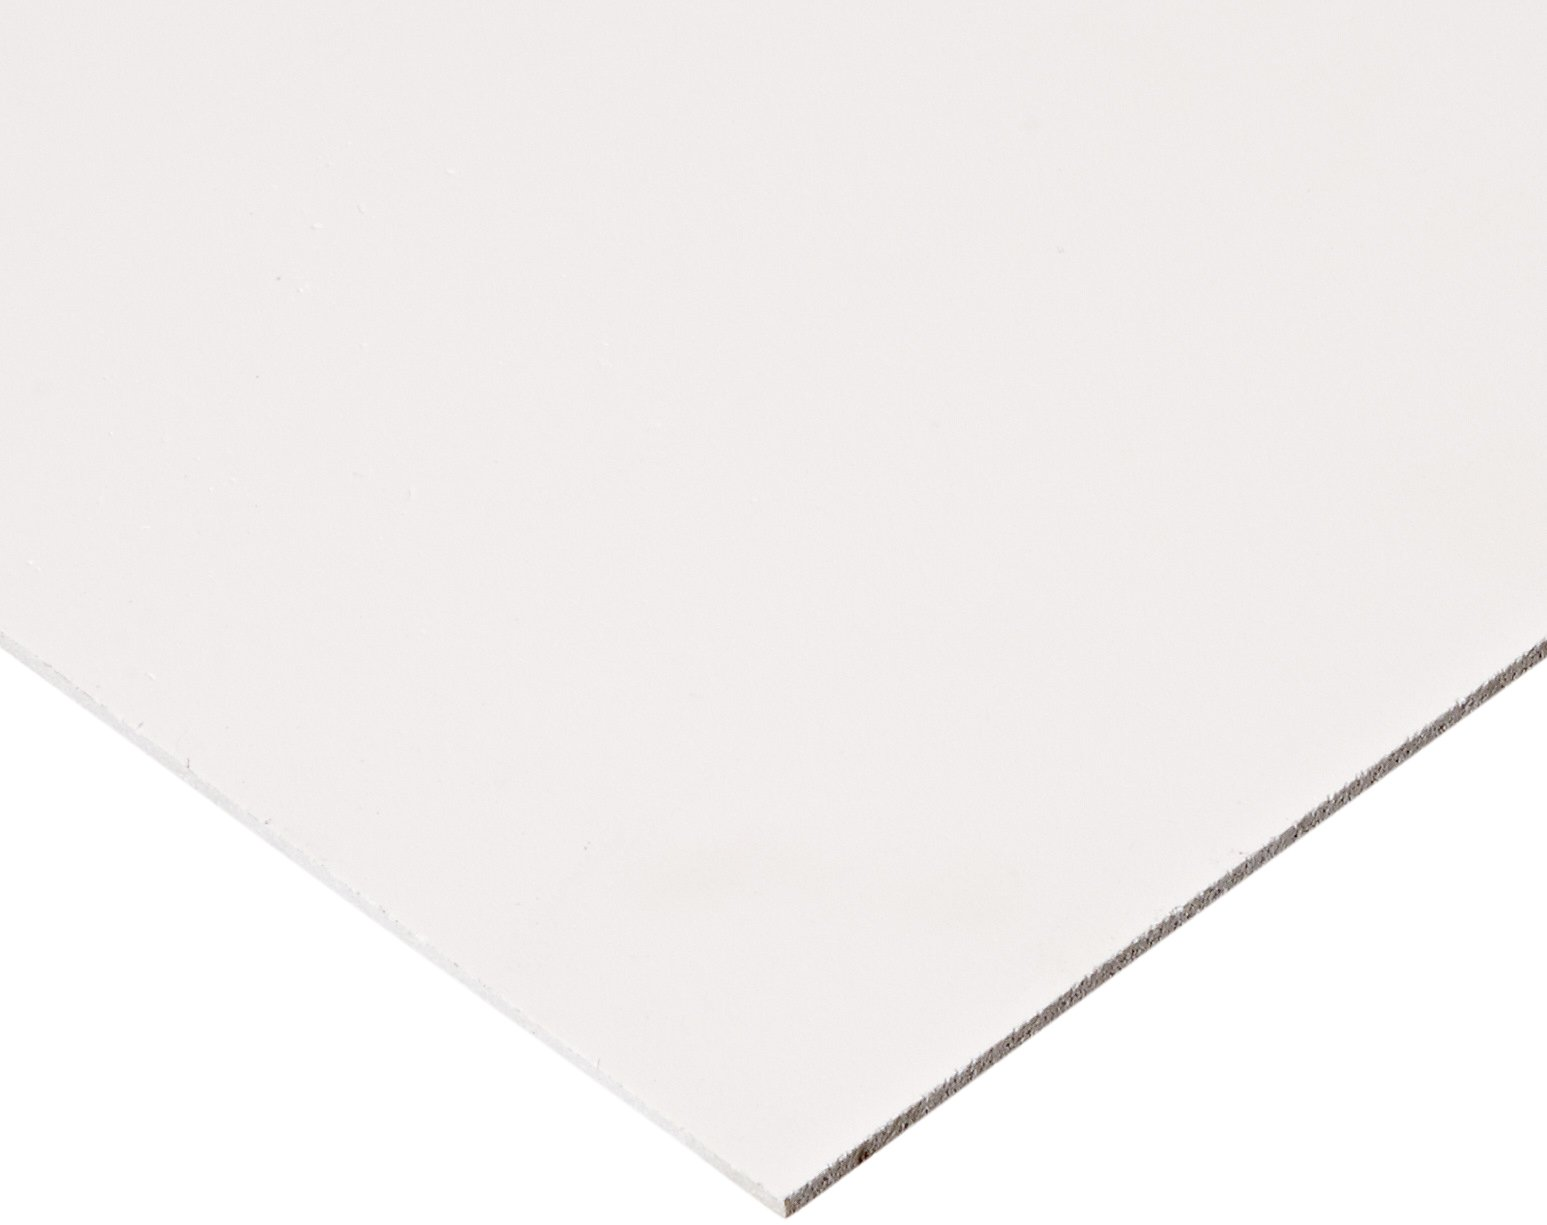 """Celtec Expanded PVC Sheet, Satin Smooth Finish, 2mm Thick, 12"""" Length x 12"""" Width, White"""